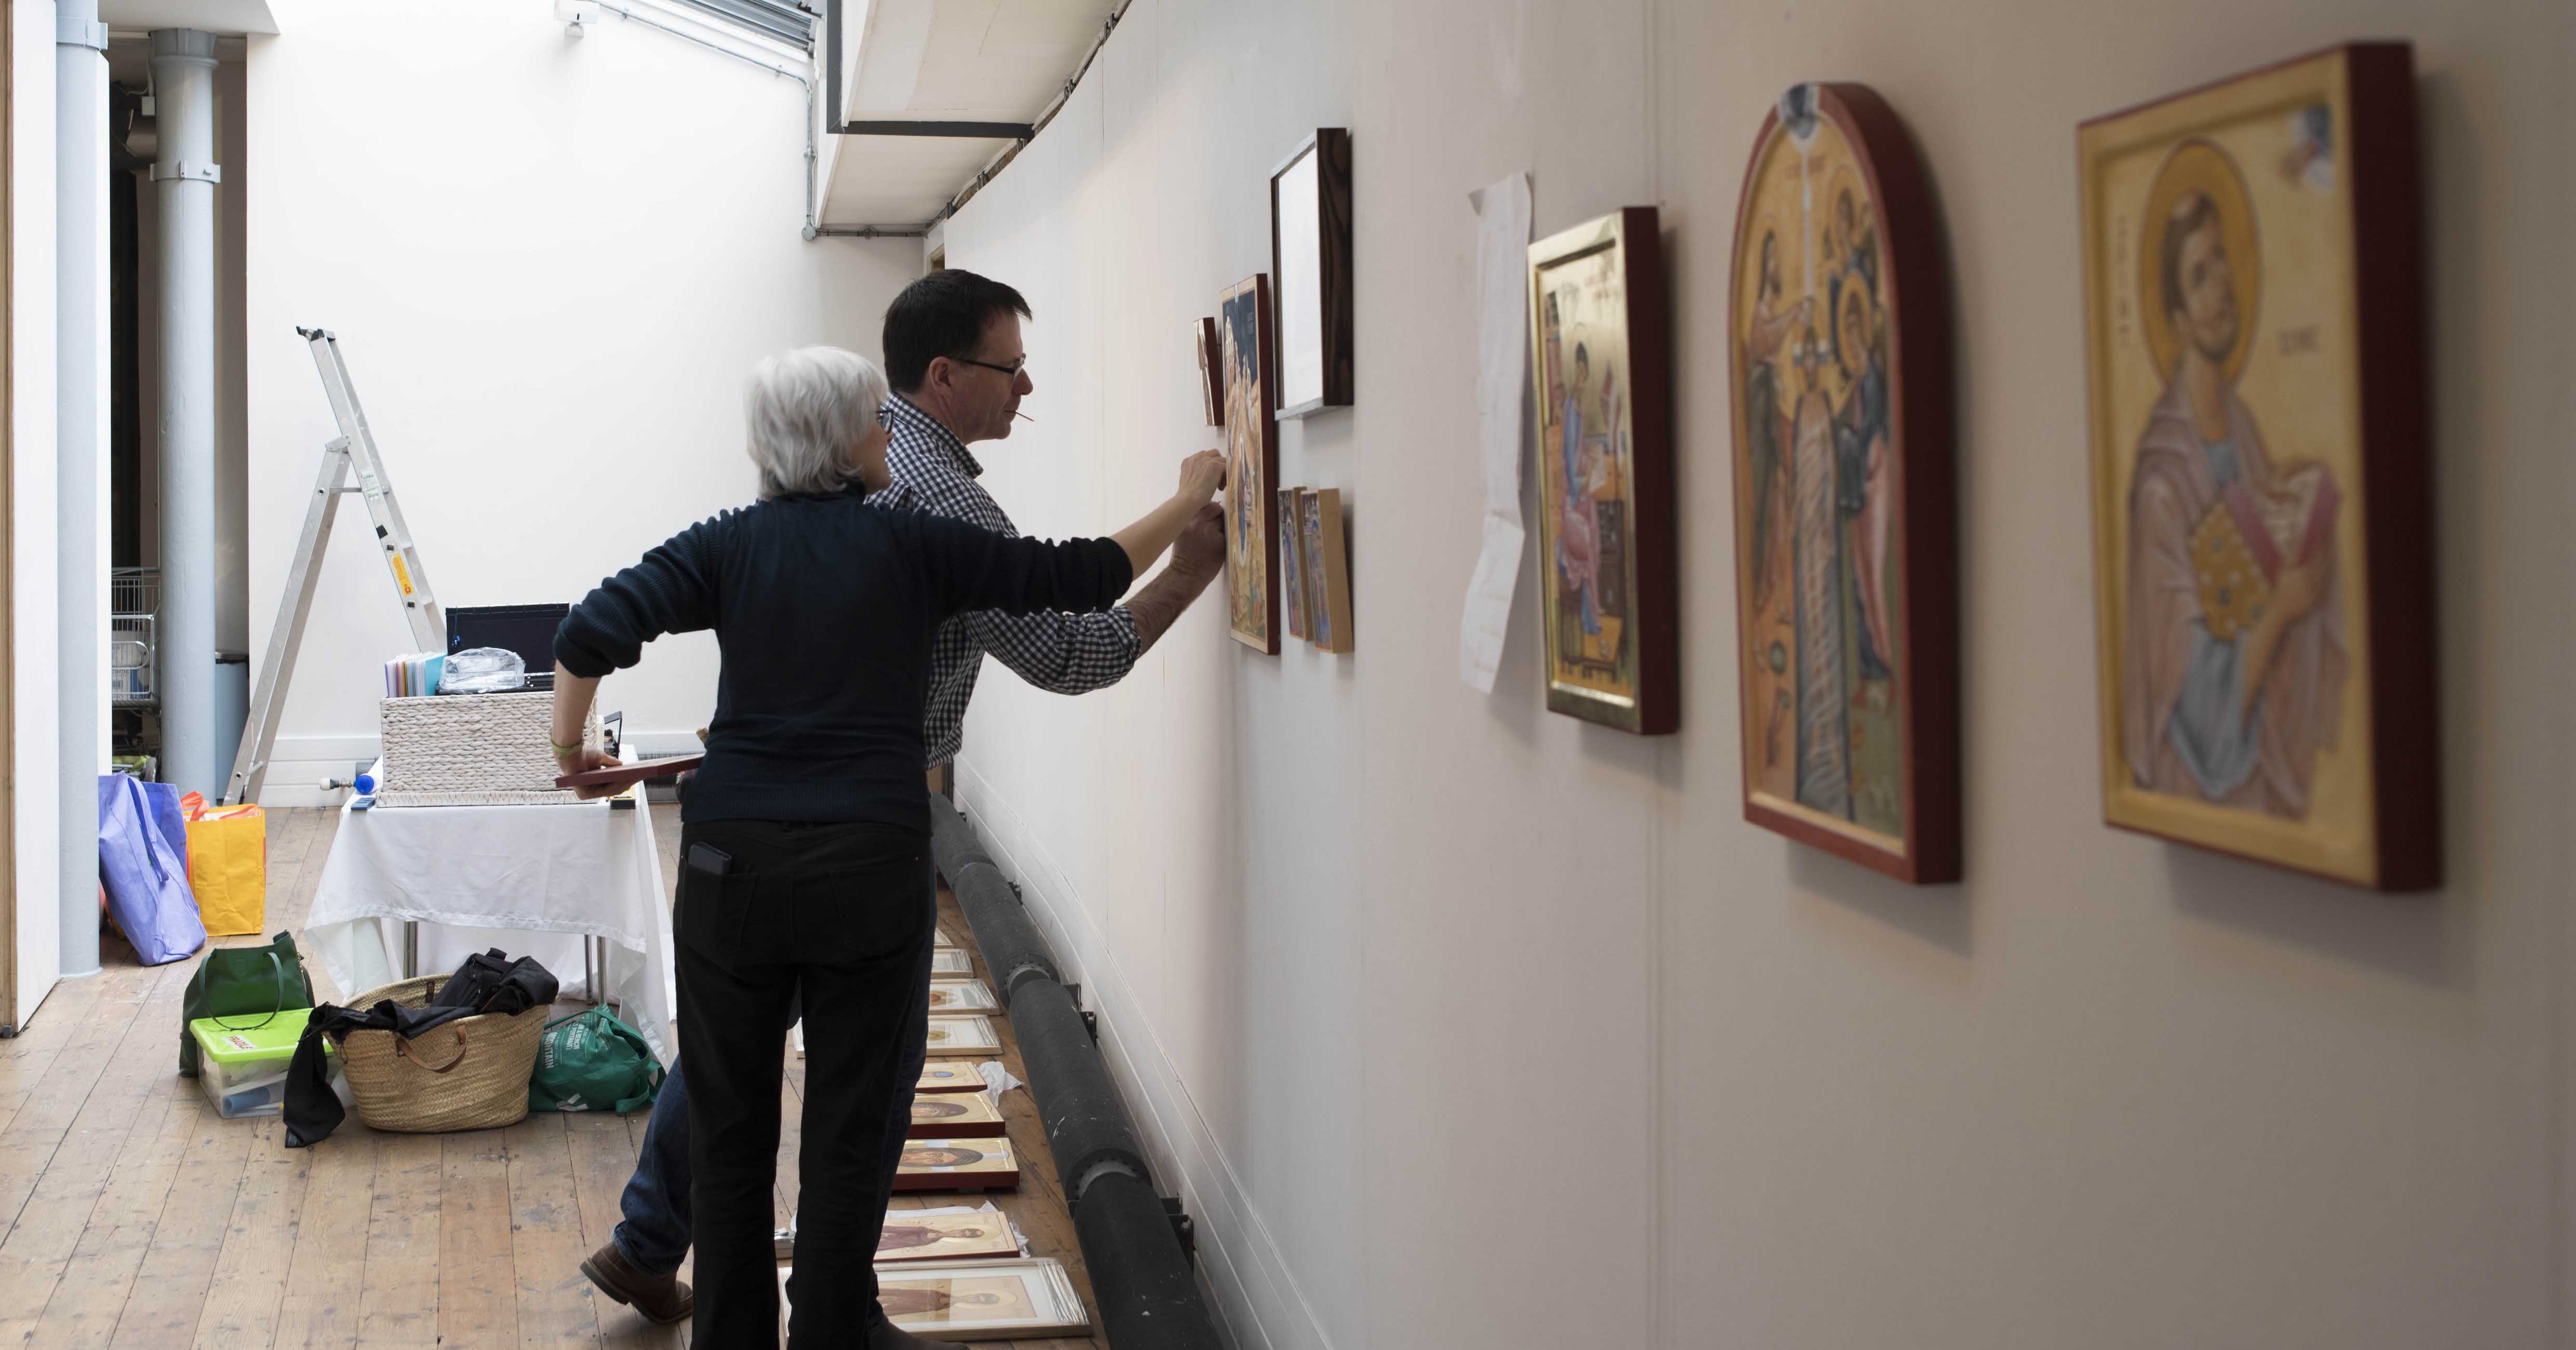 fixing icons at exhibtion